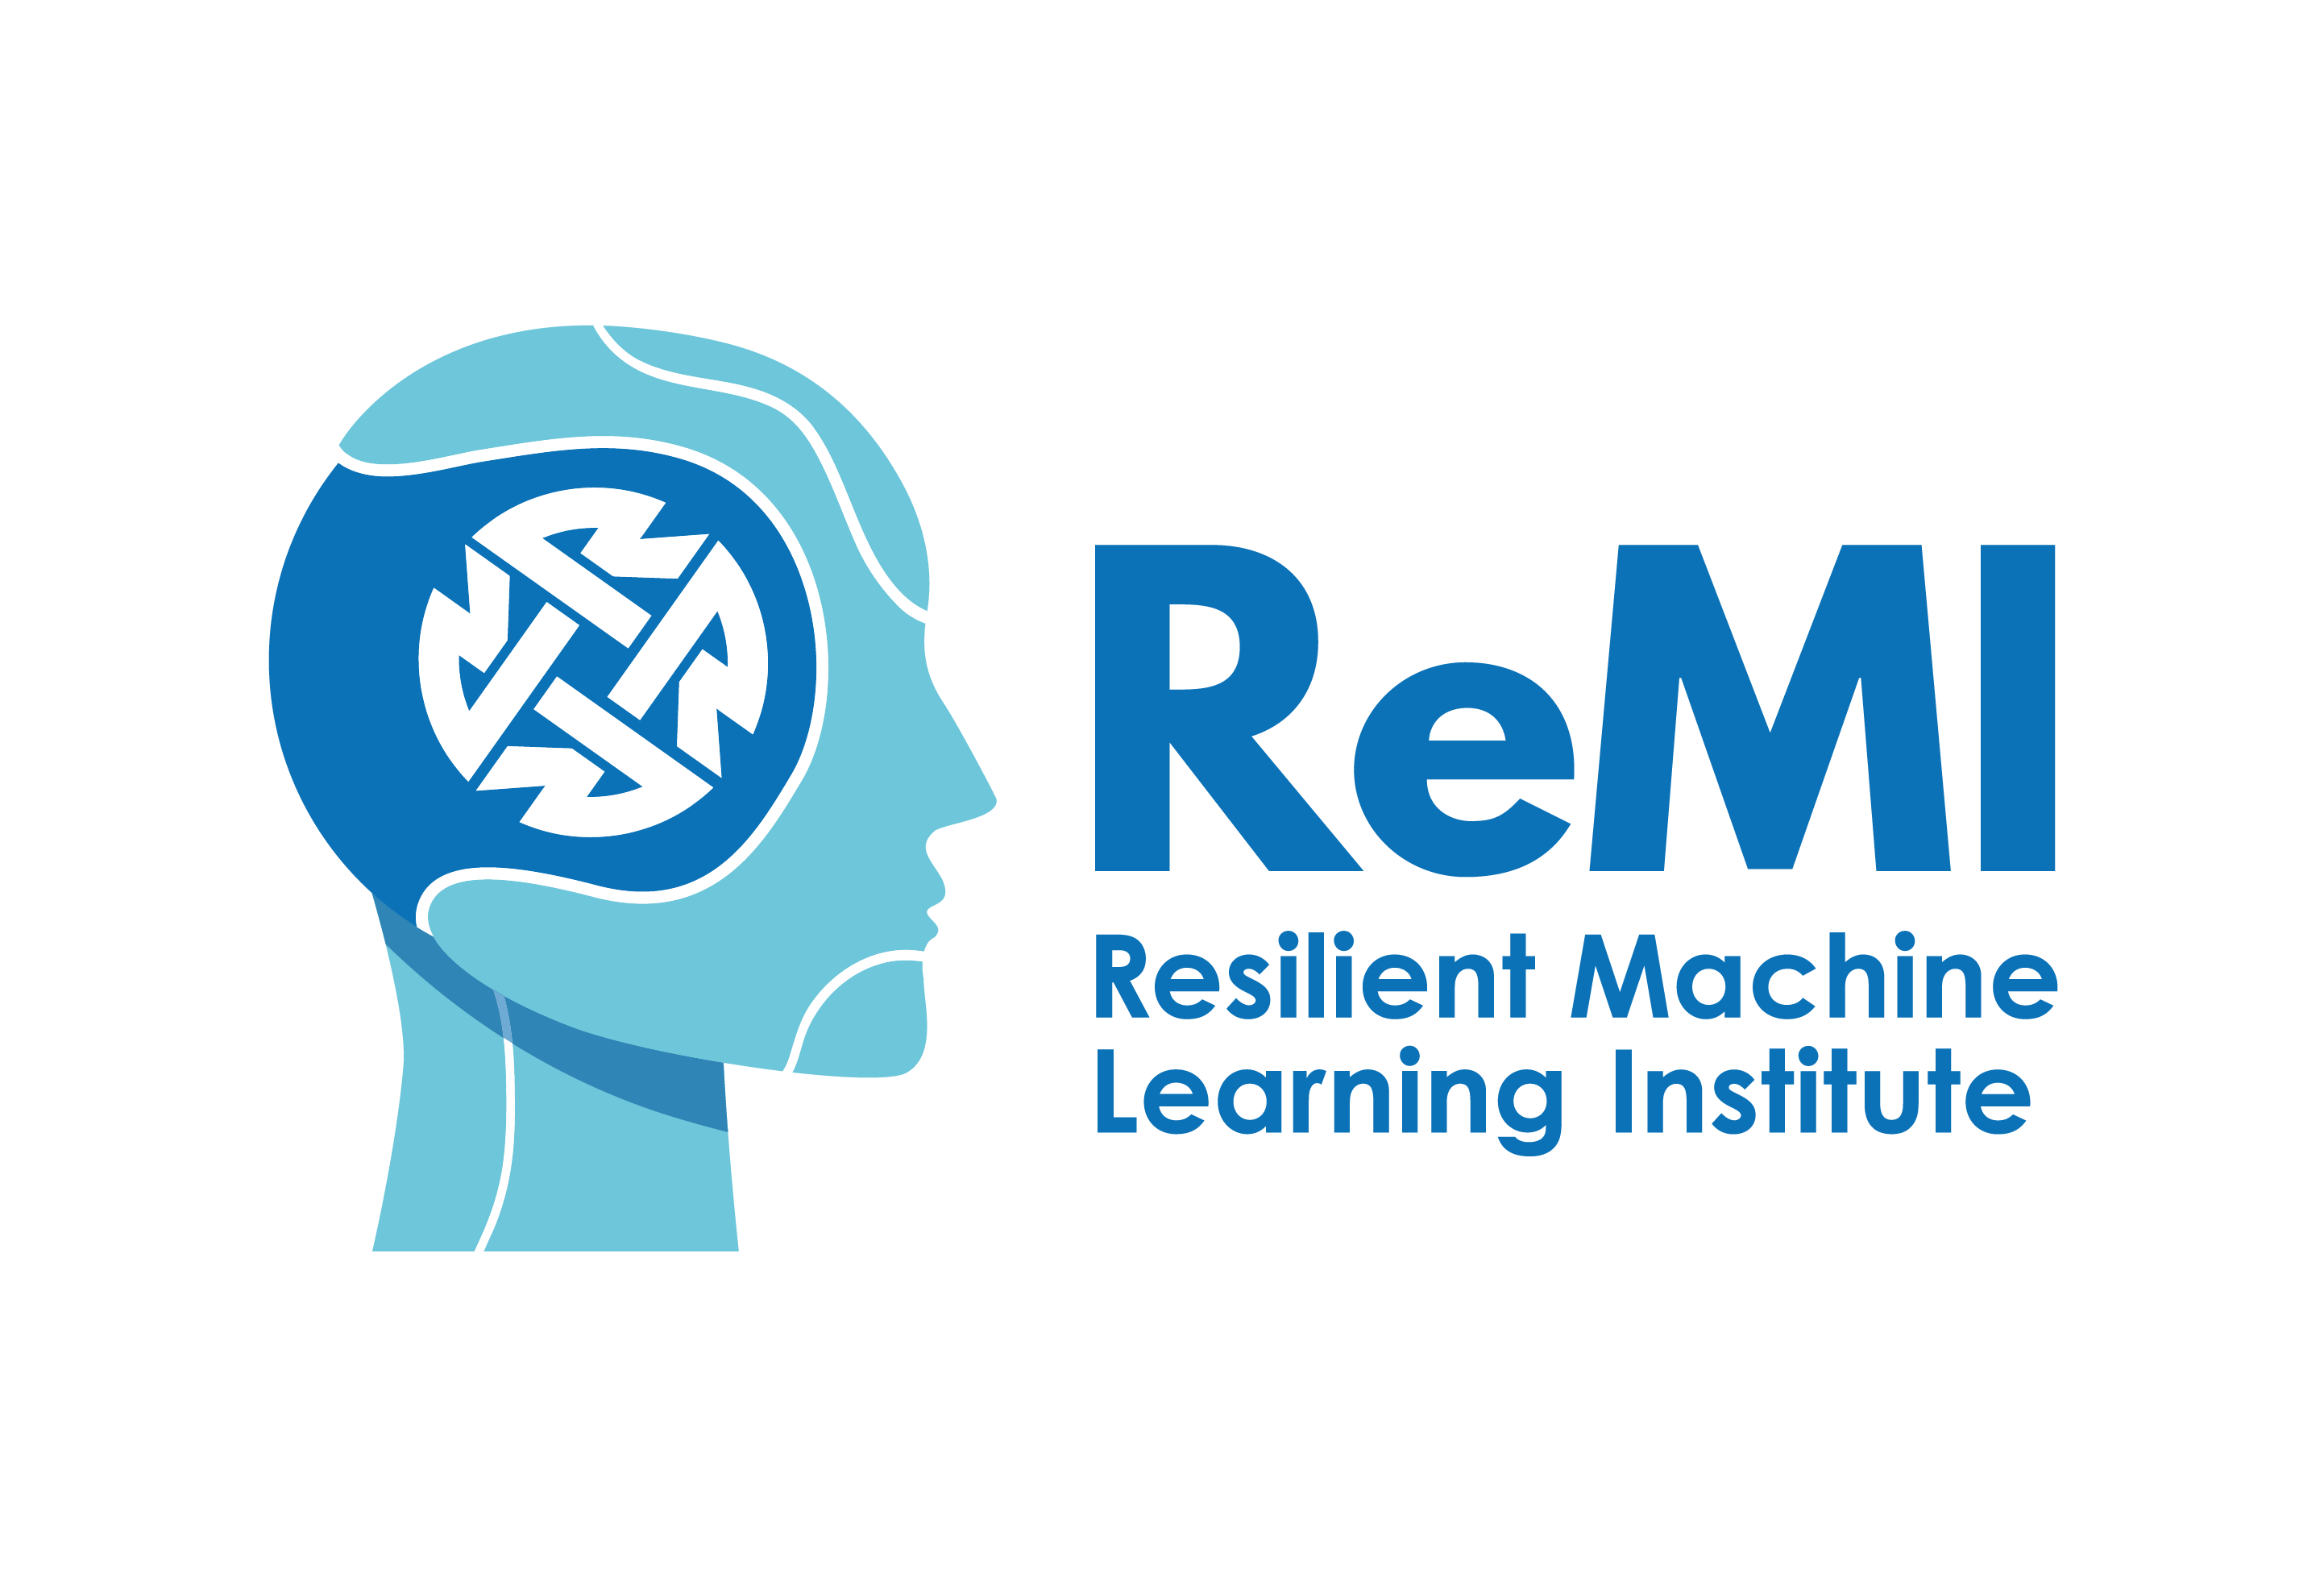 Resilient Machine Learning Institute